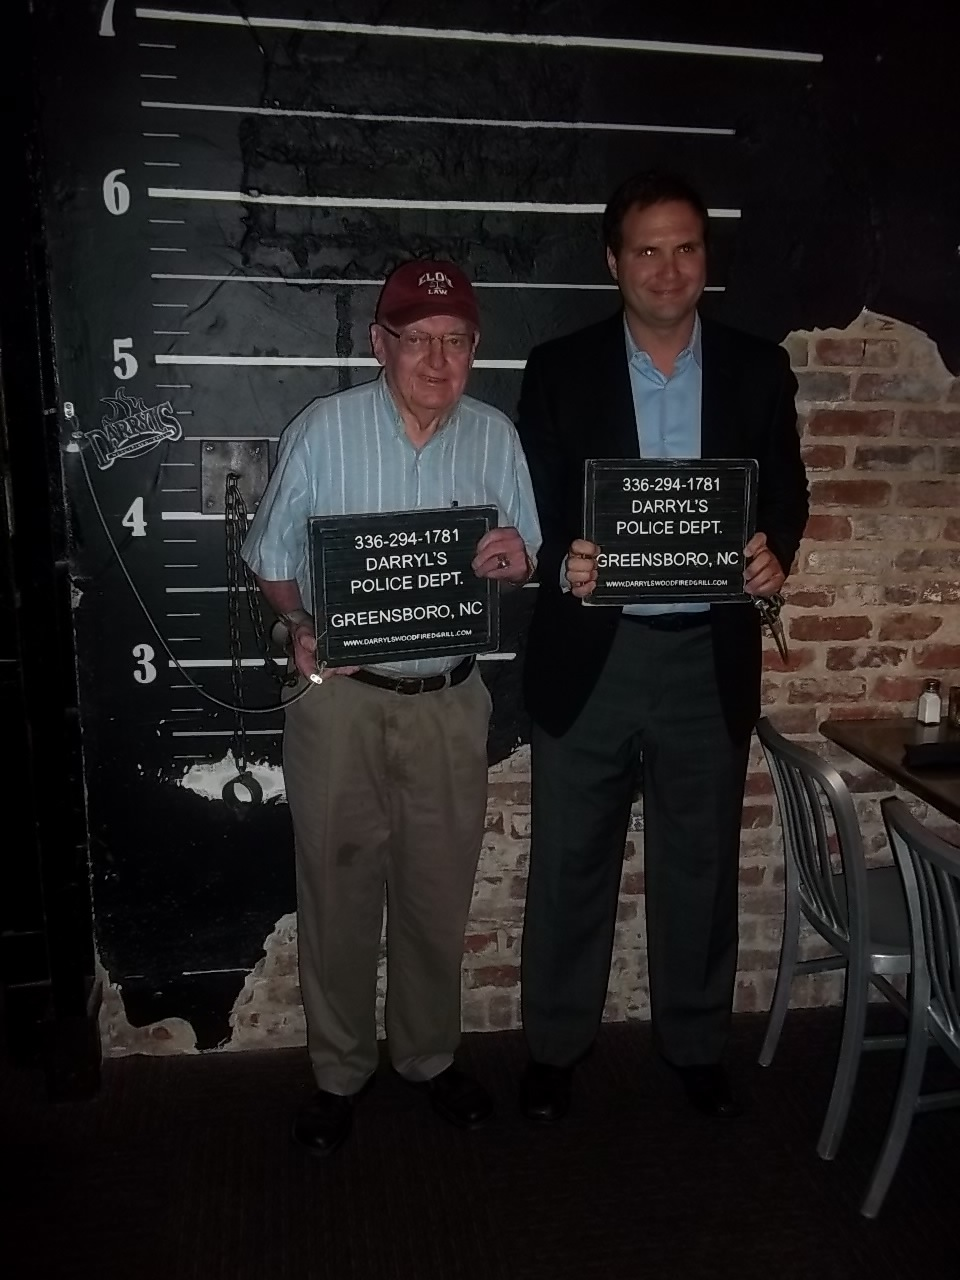 Congressman Coble and Marty Kotis get their mugshot